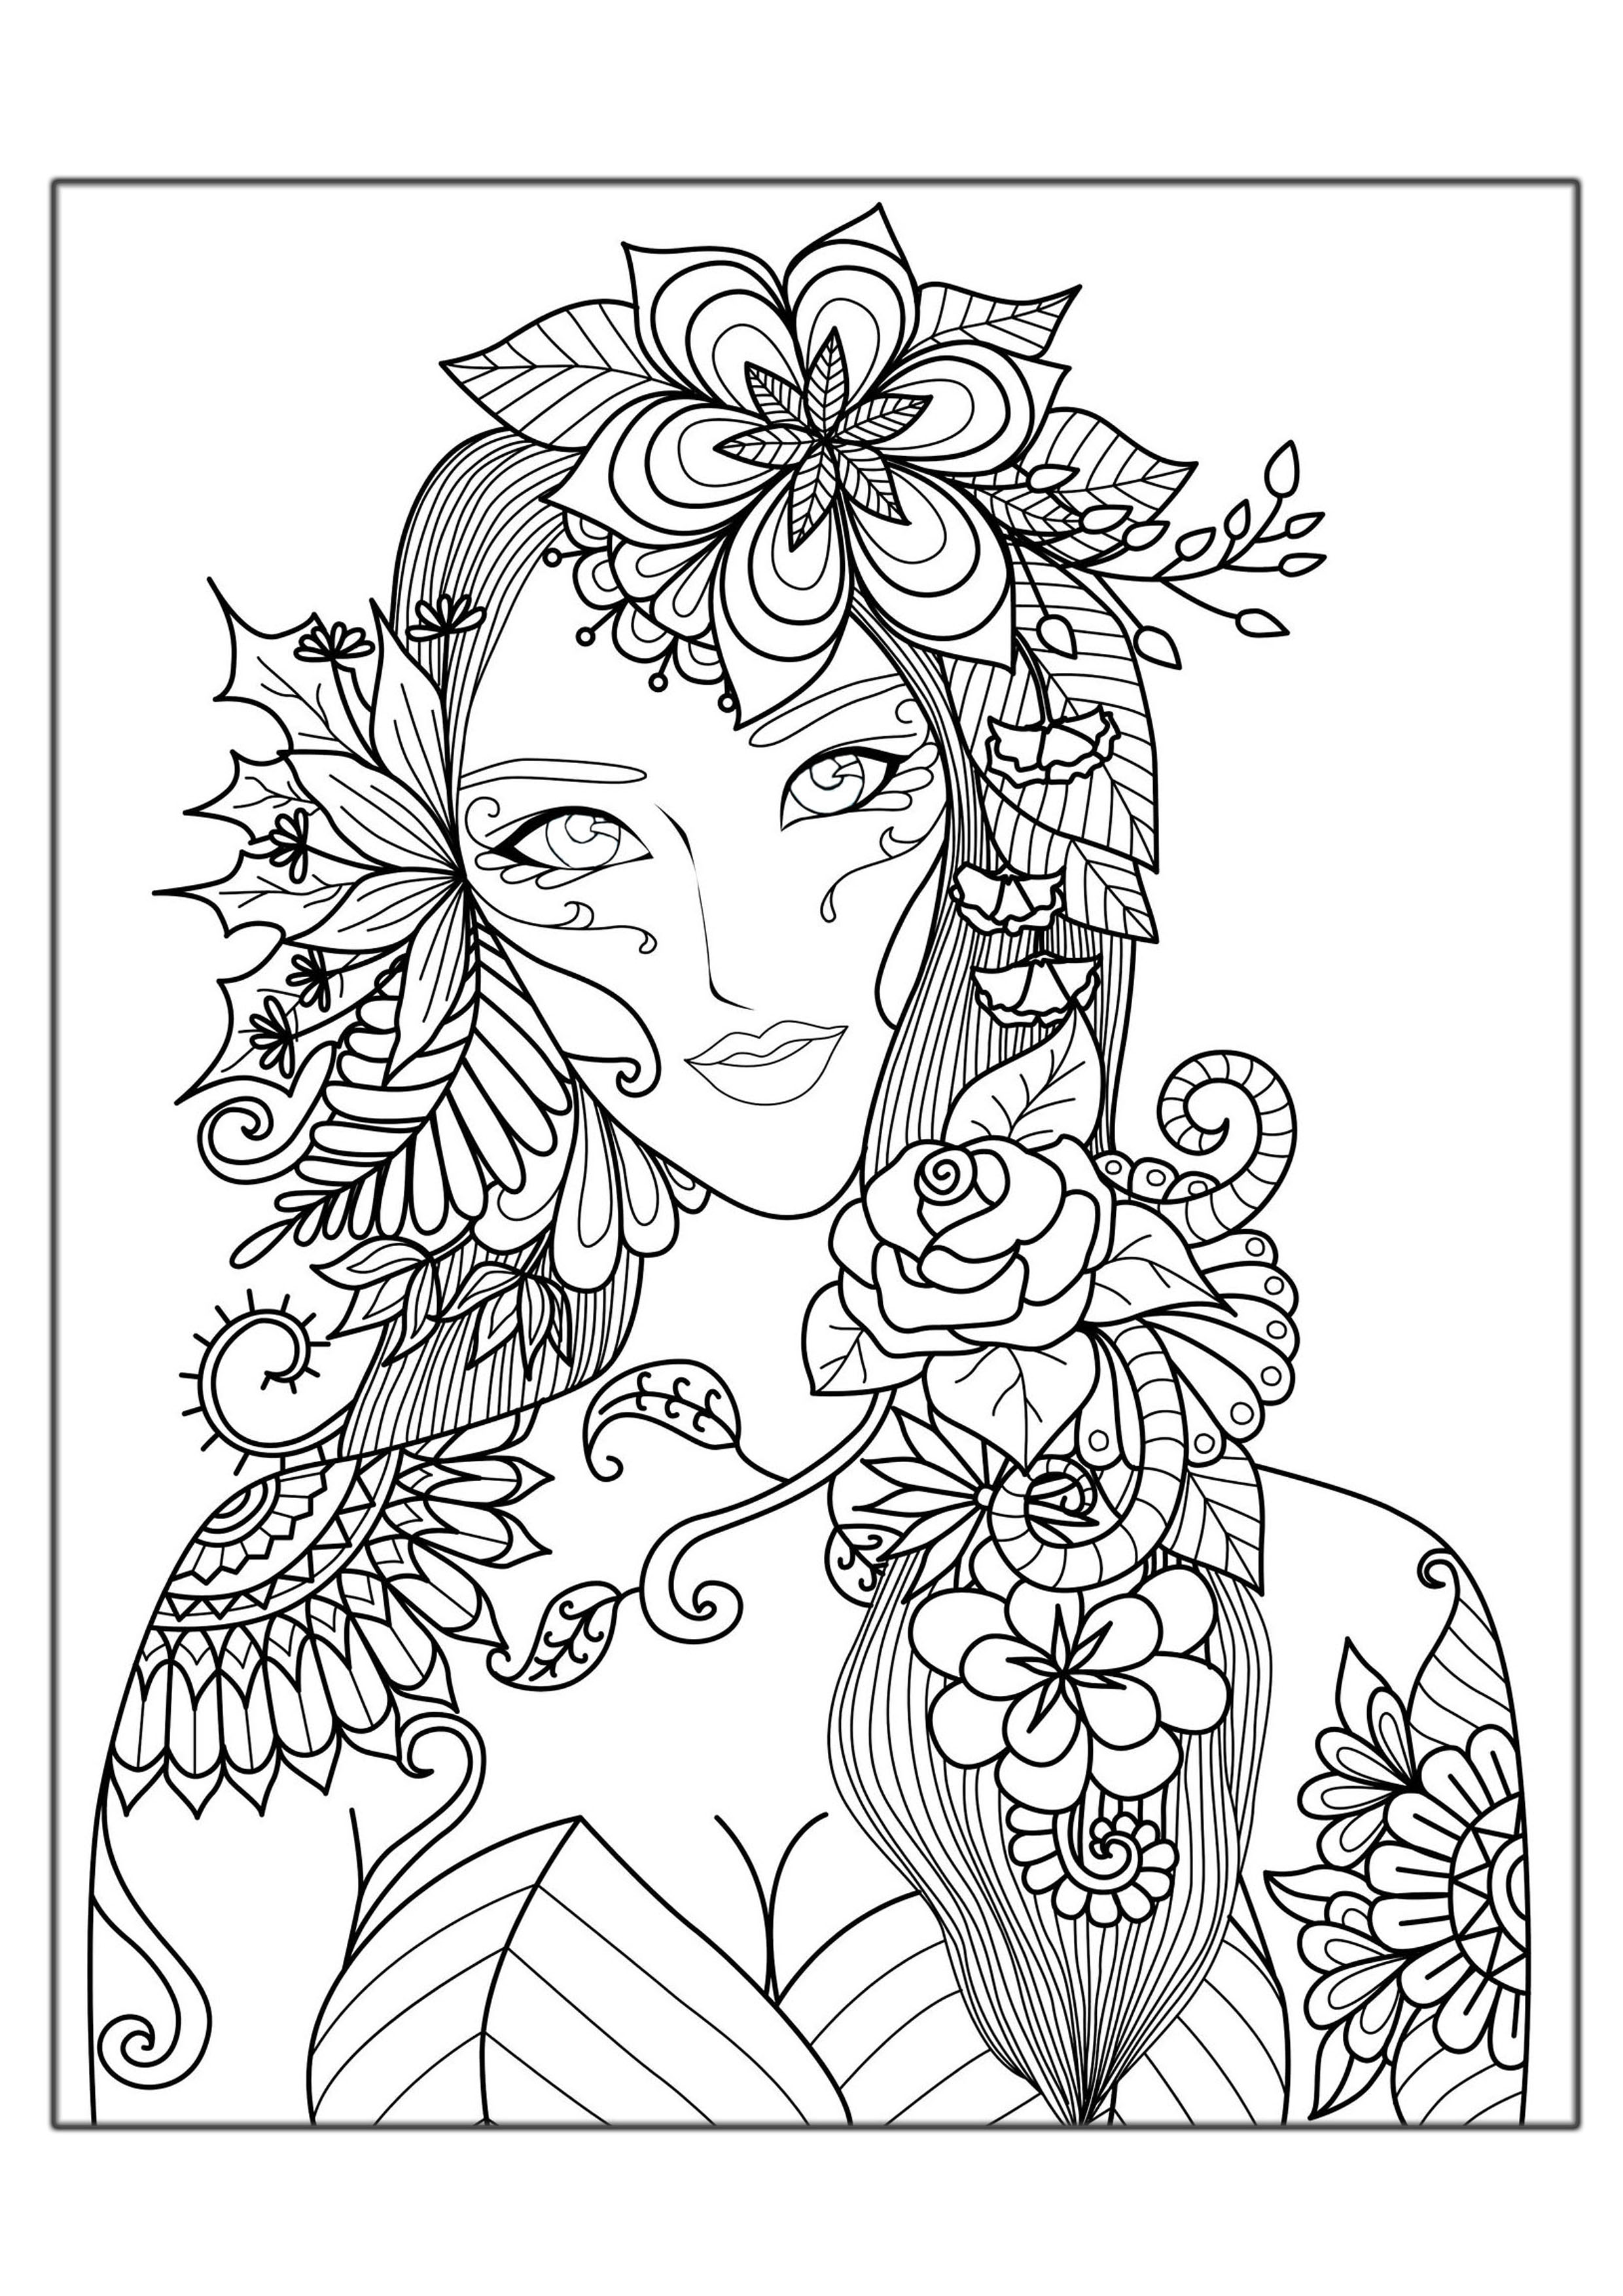 free printable coloring pages for adults hard coloring pages for adults best coloring pages for kids for free coloring printable pages adults